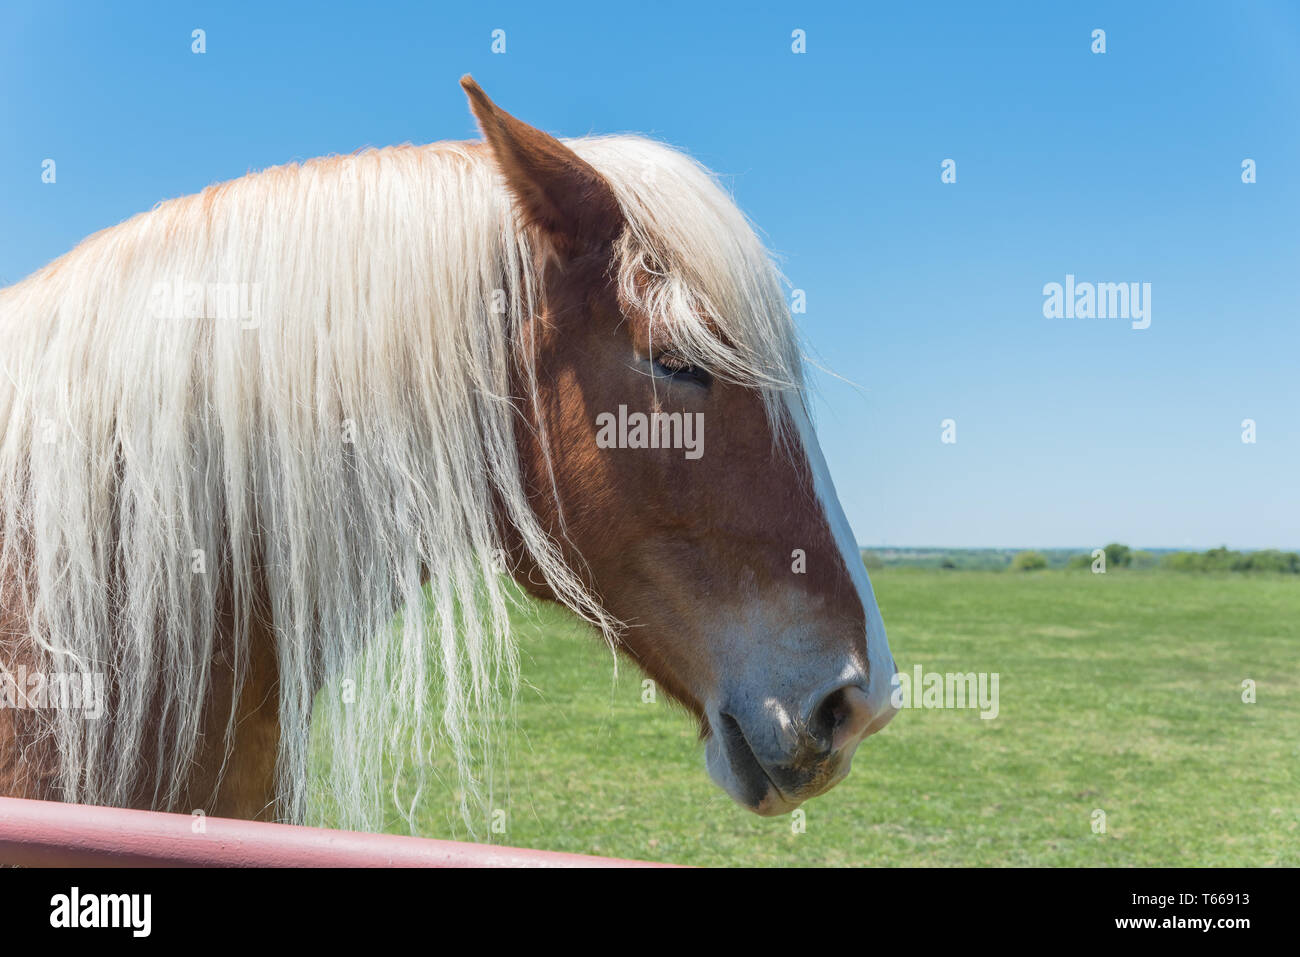 Belgian horse at American farm ranch close-up - Stock Image